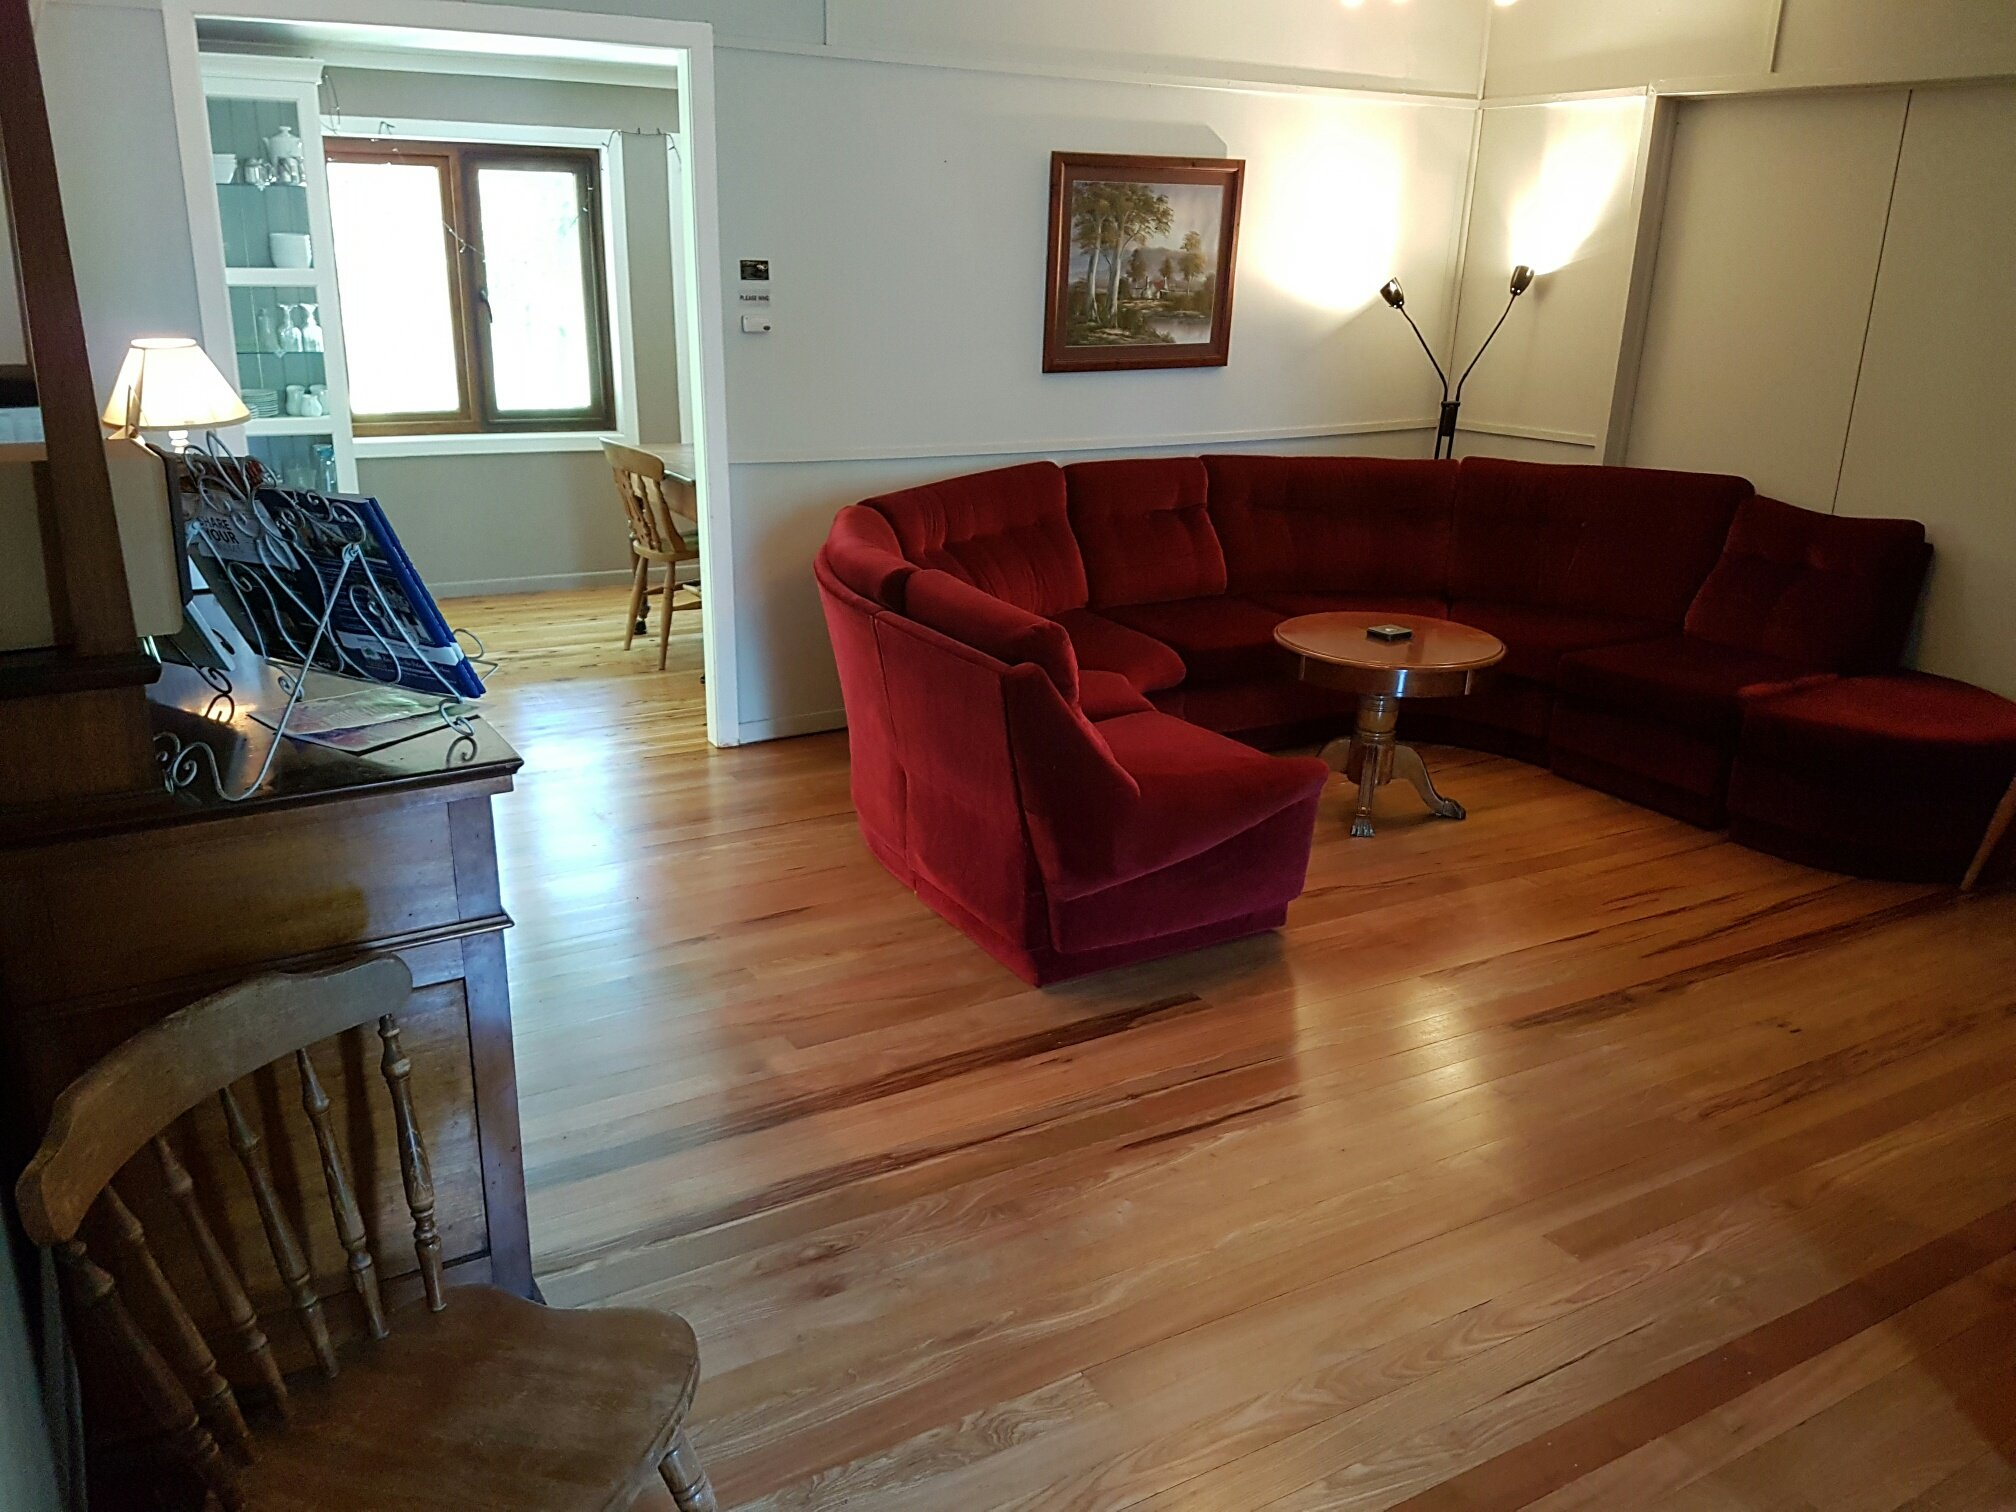 Wooden flooring in the lounge room